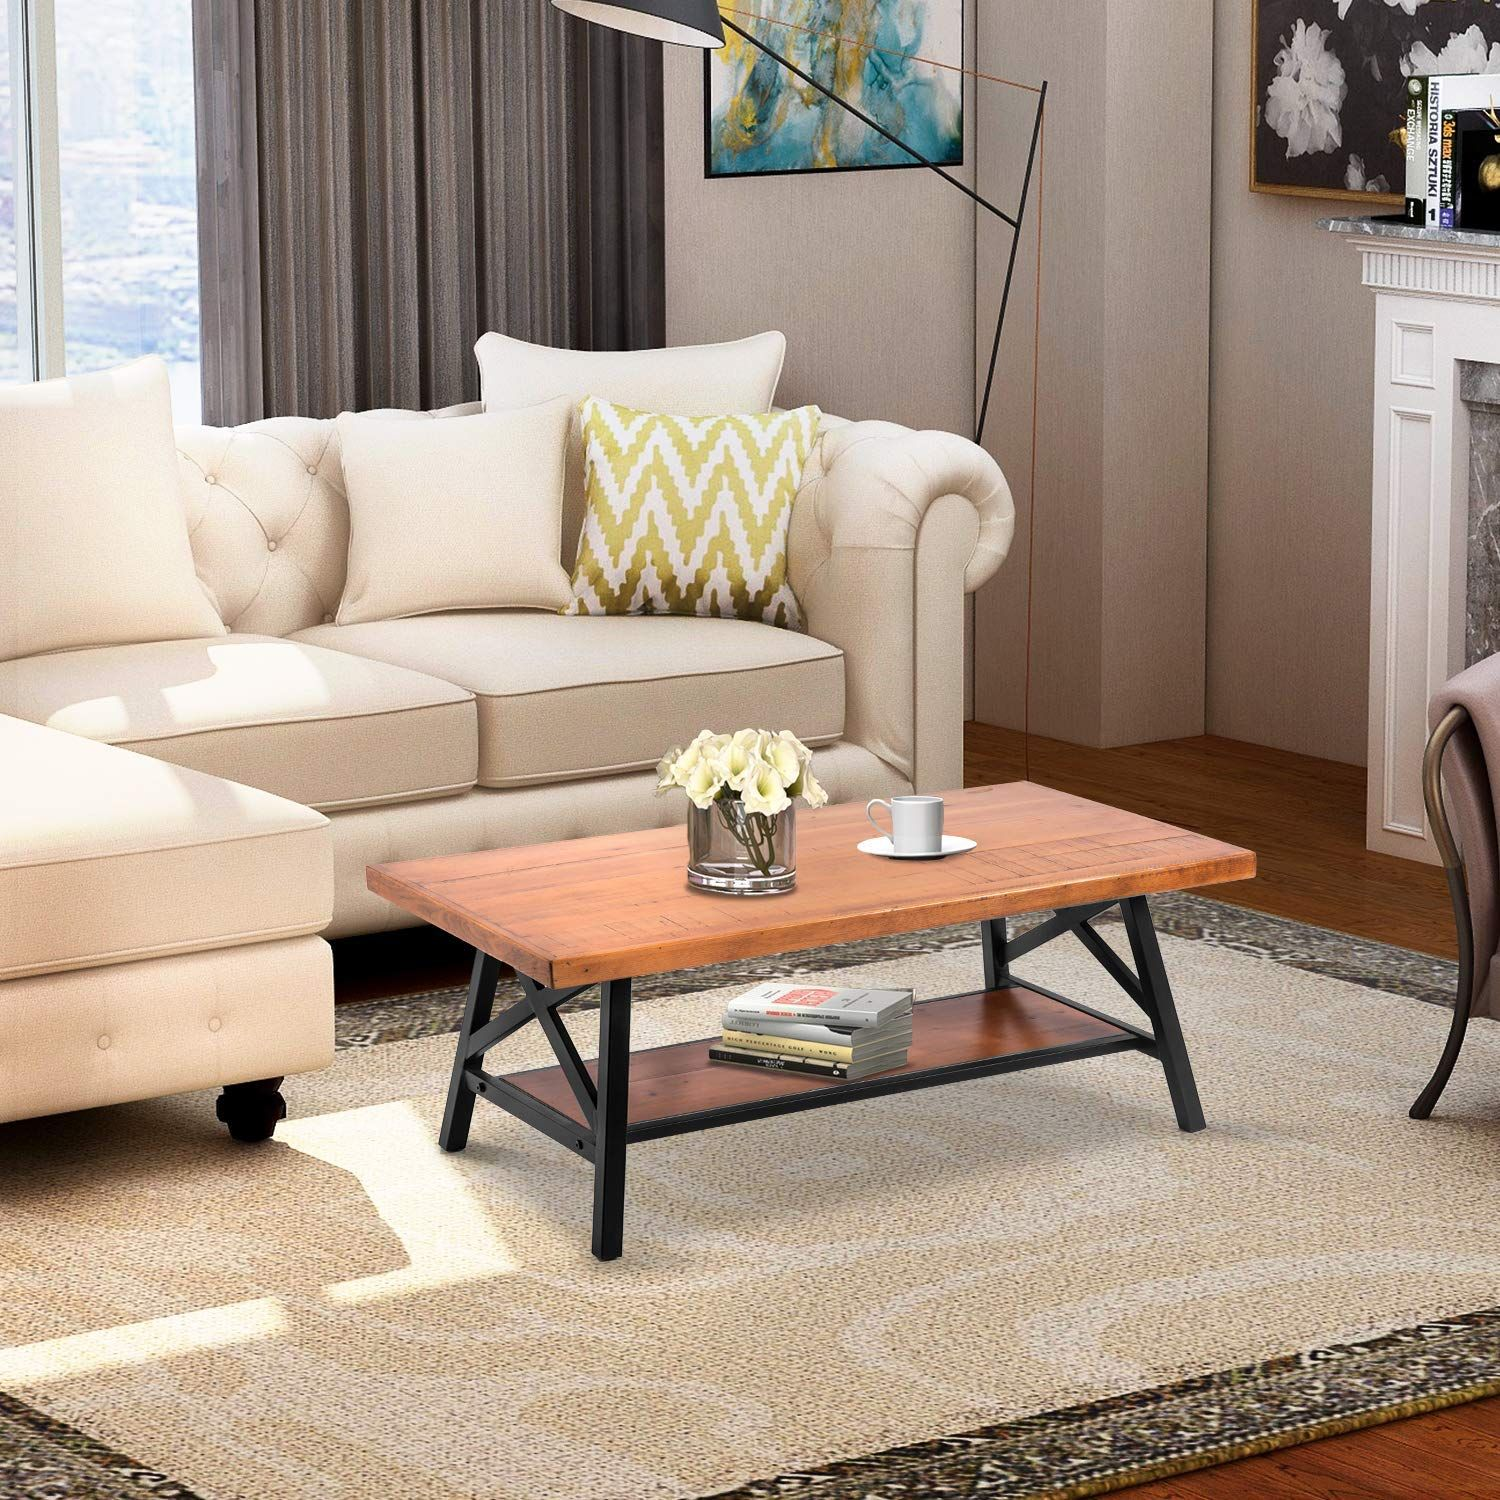 100 Beach Coffee Tables And Coastal Coffee Tables 2020 In 2020 Coffee Table Coastal Living Room Furniture Beach Living Room Furniture